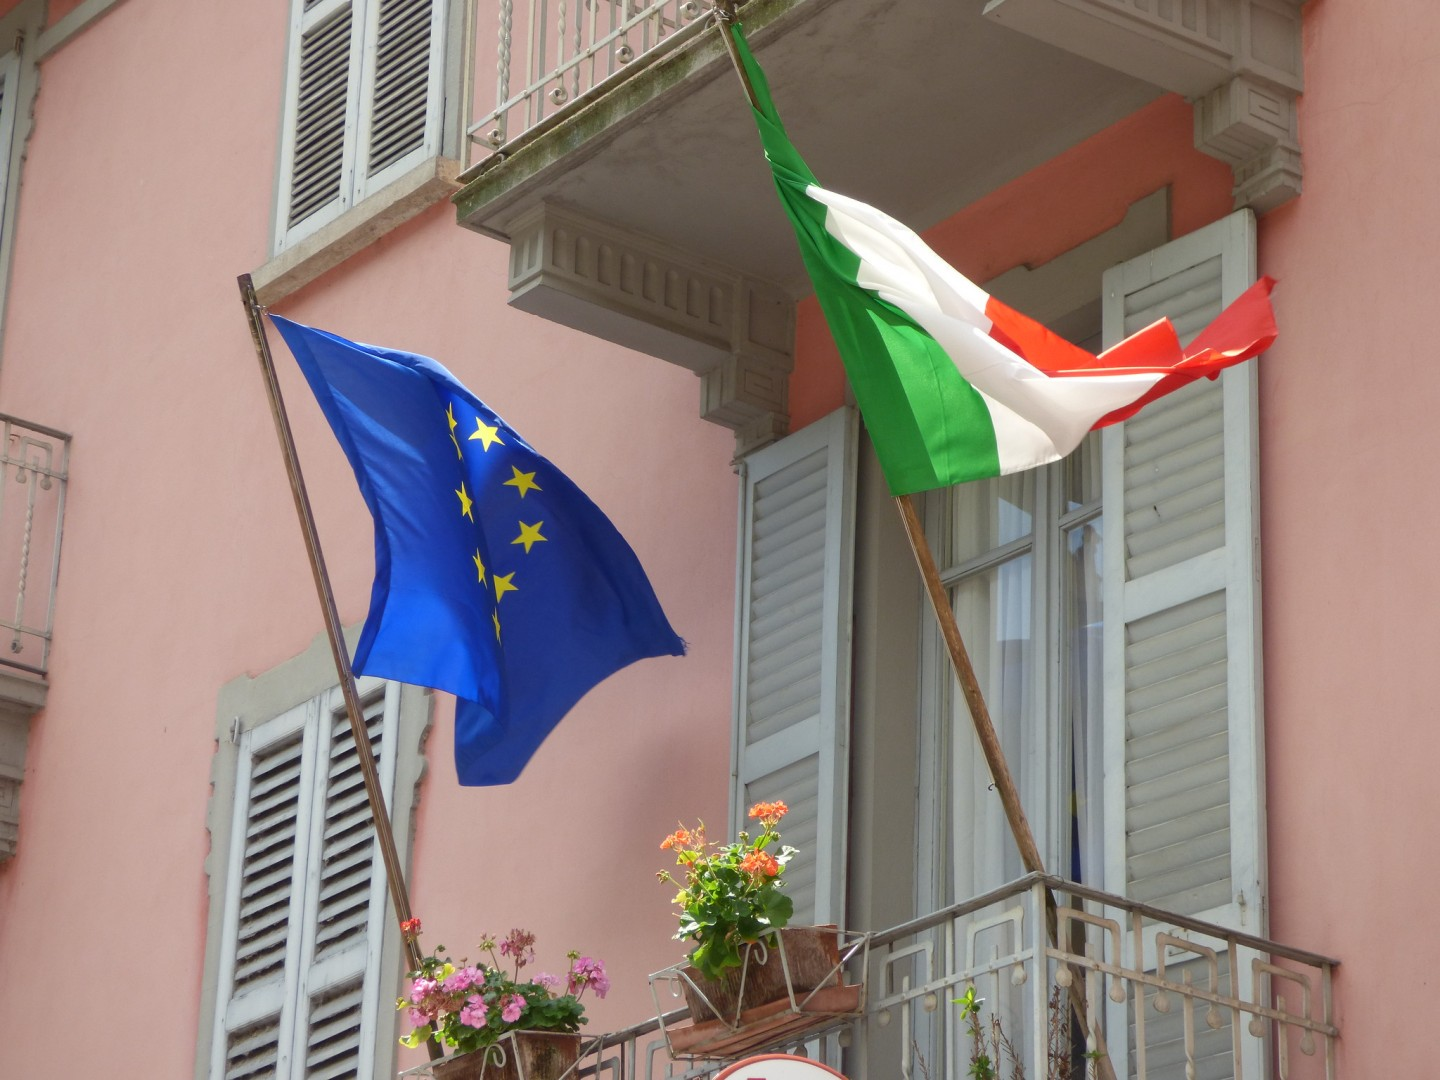 The EU's nod comes as Italy works to use subsidies to help boost PV capacity from 20GW to 50GW by 2030 (Credit: Flickr / Elliott Brown)